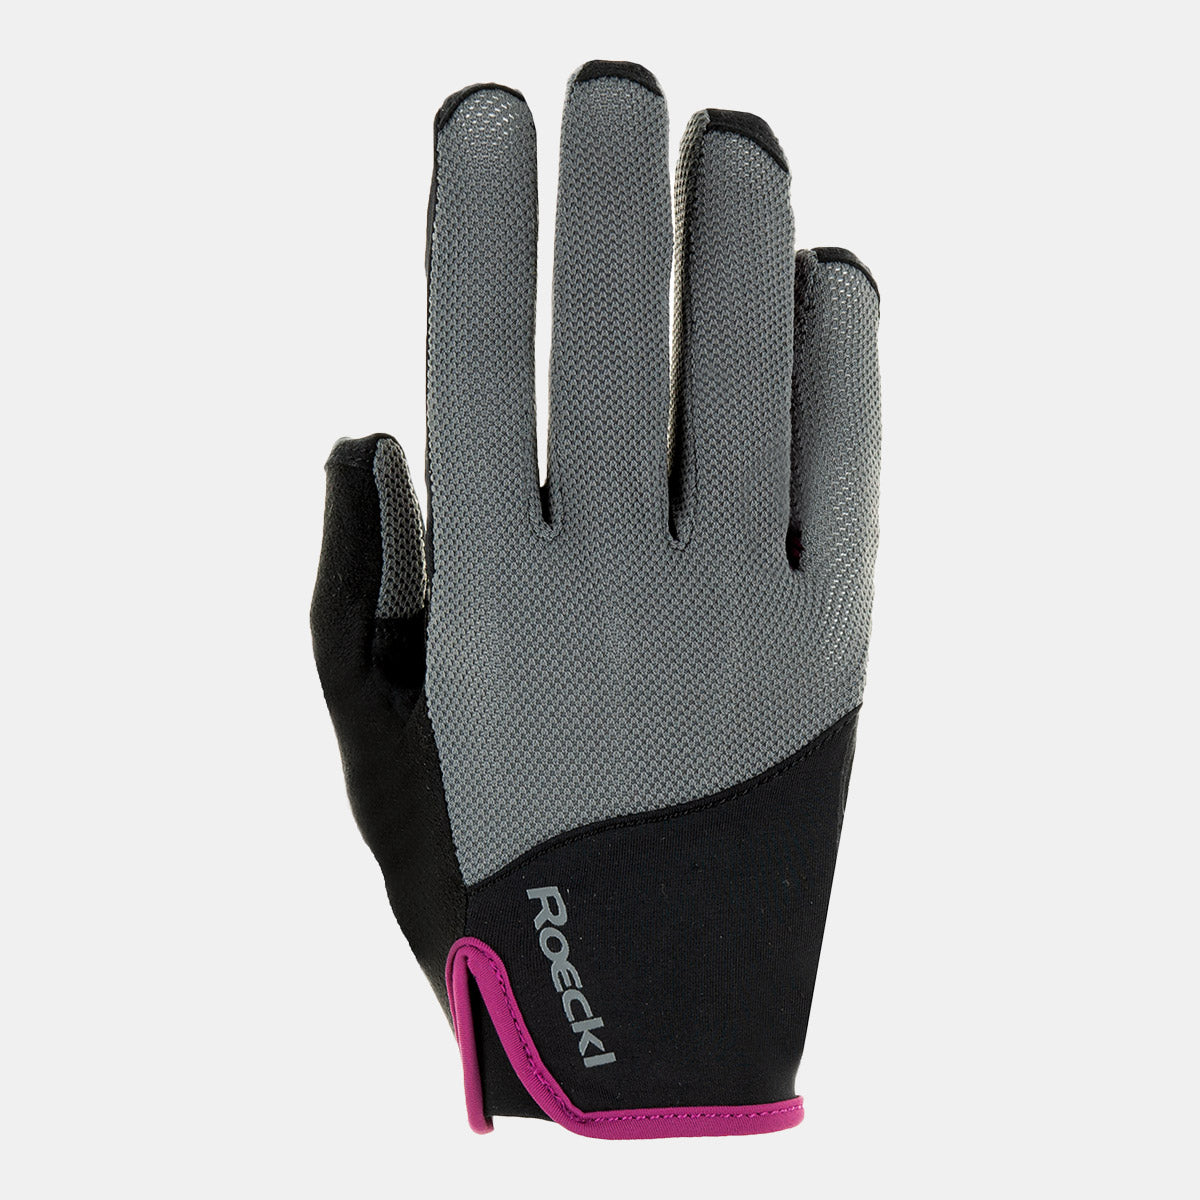 Roeckl Lynn Ladies Riding Glove in Anthracite